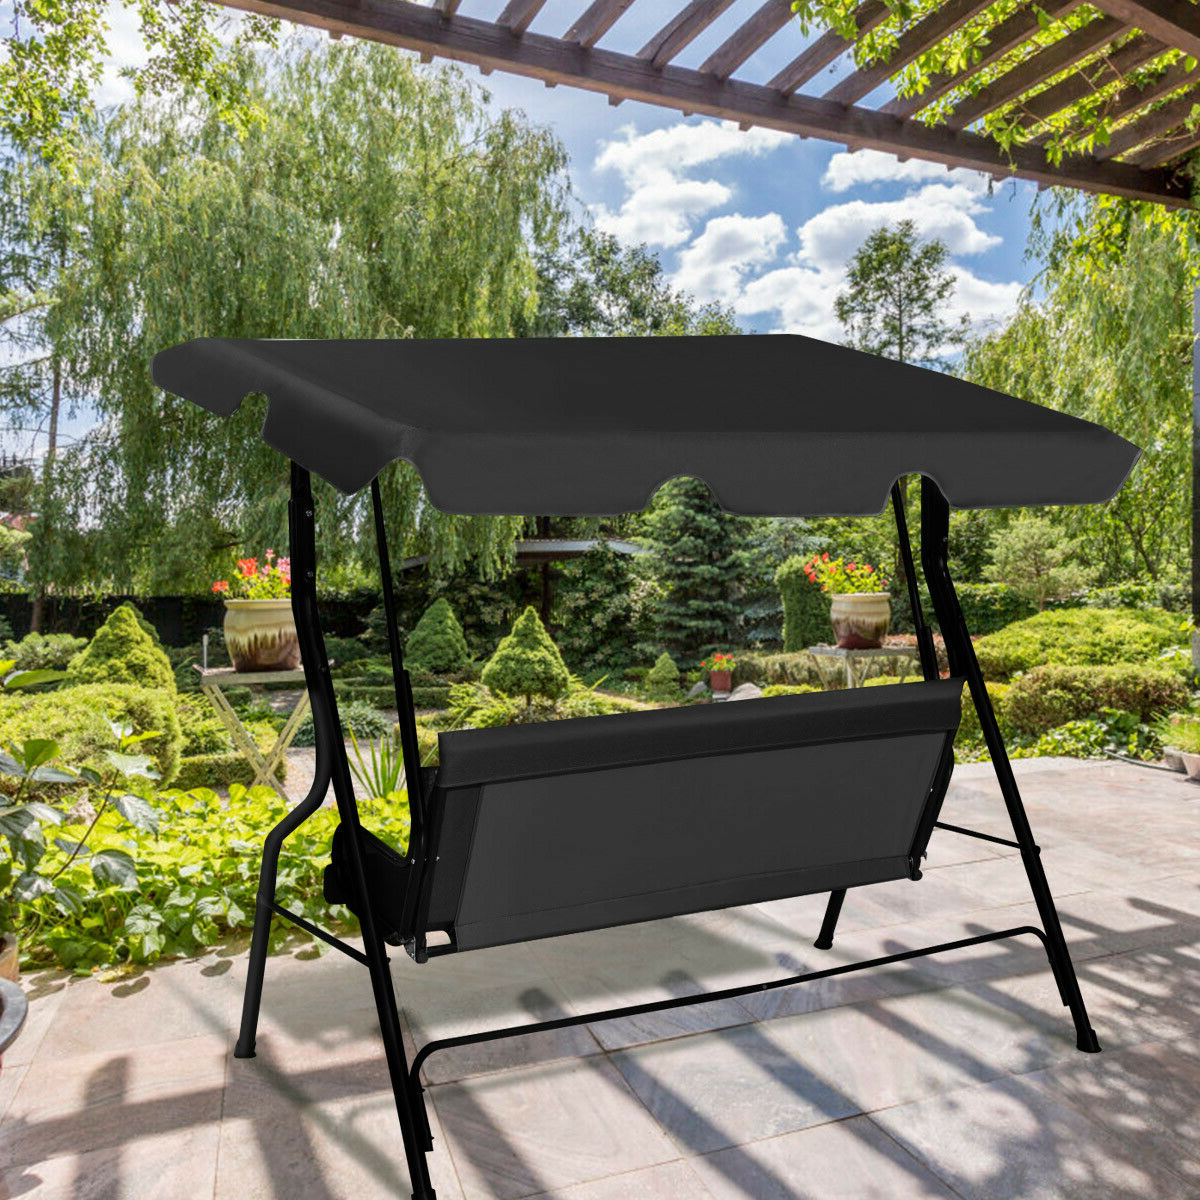 3 Seats Patio Canopy Swing Gliders Hammock Cushioned Steel Frame With 2019 Costway 3 Seats Patio Canopy Swing Glider Hammock Cushioned (Gallery 5 of 30)